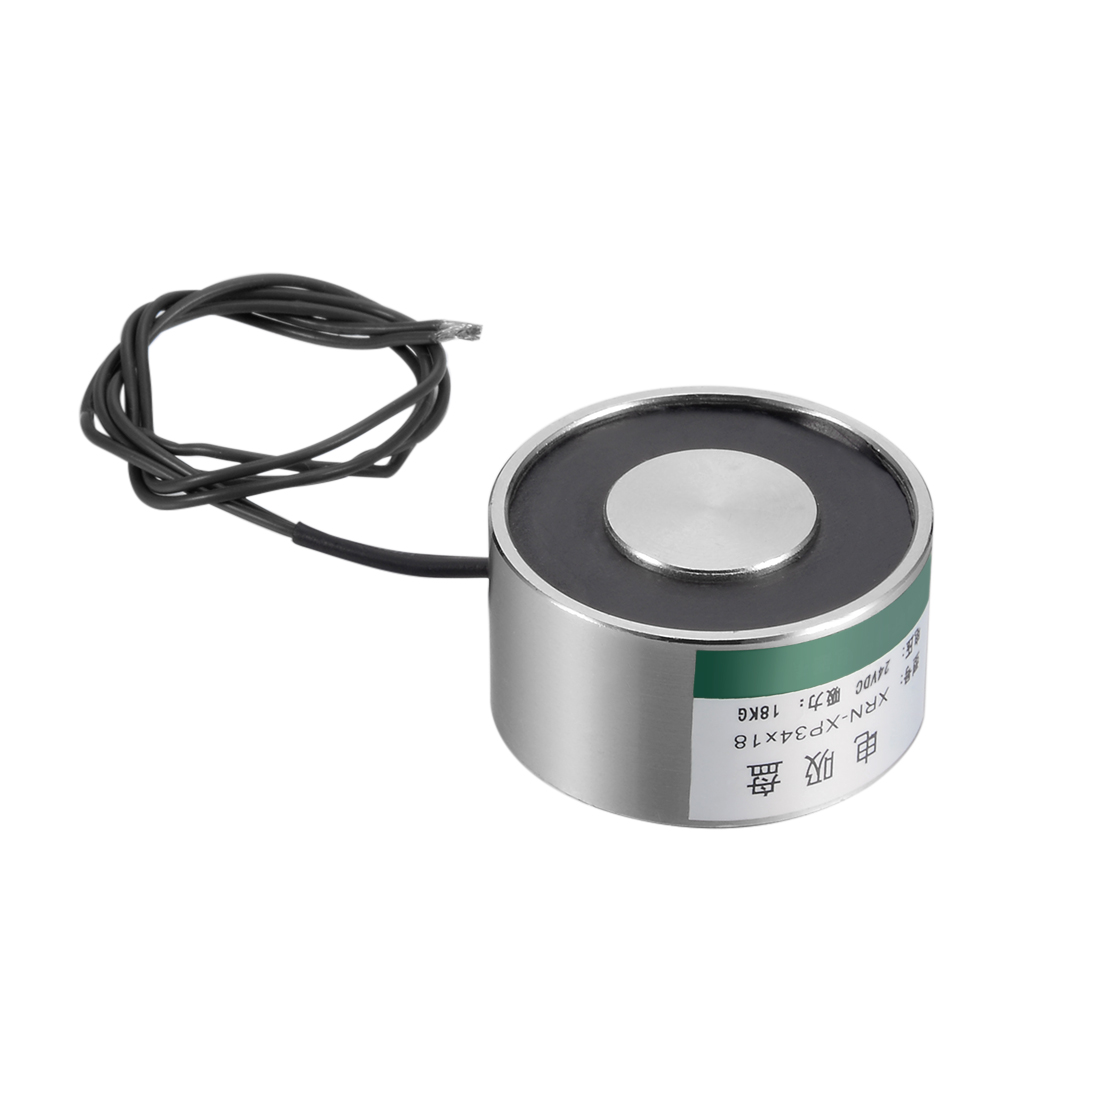 Uxcell 34mm X 18mm DC24V 180N Sucking Disc Solenoid Lift Holding Electromagnet